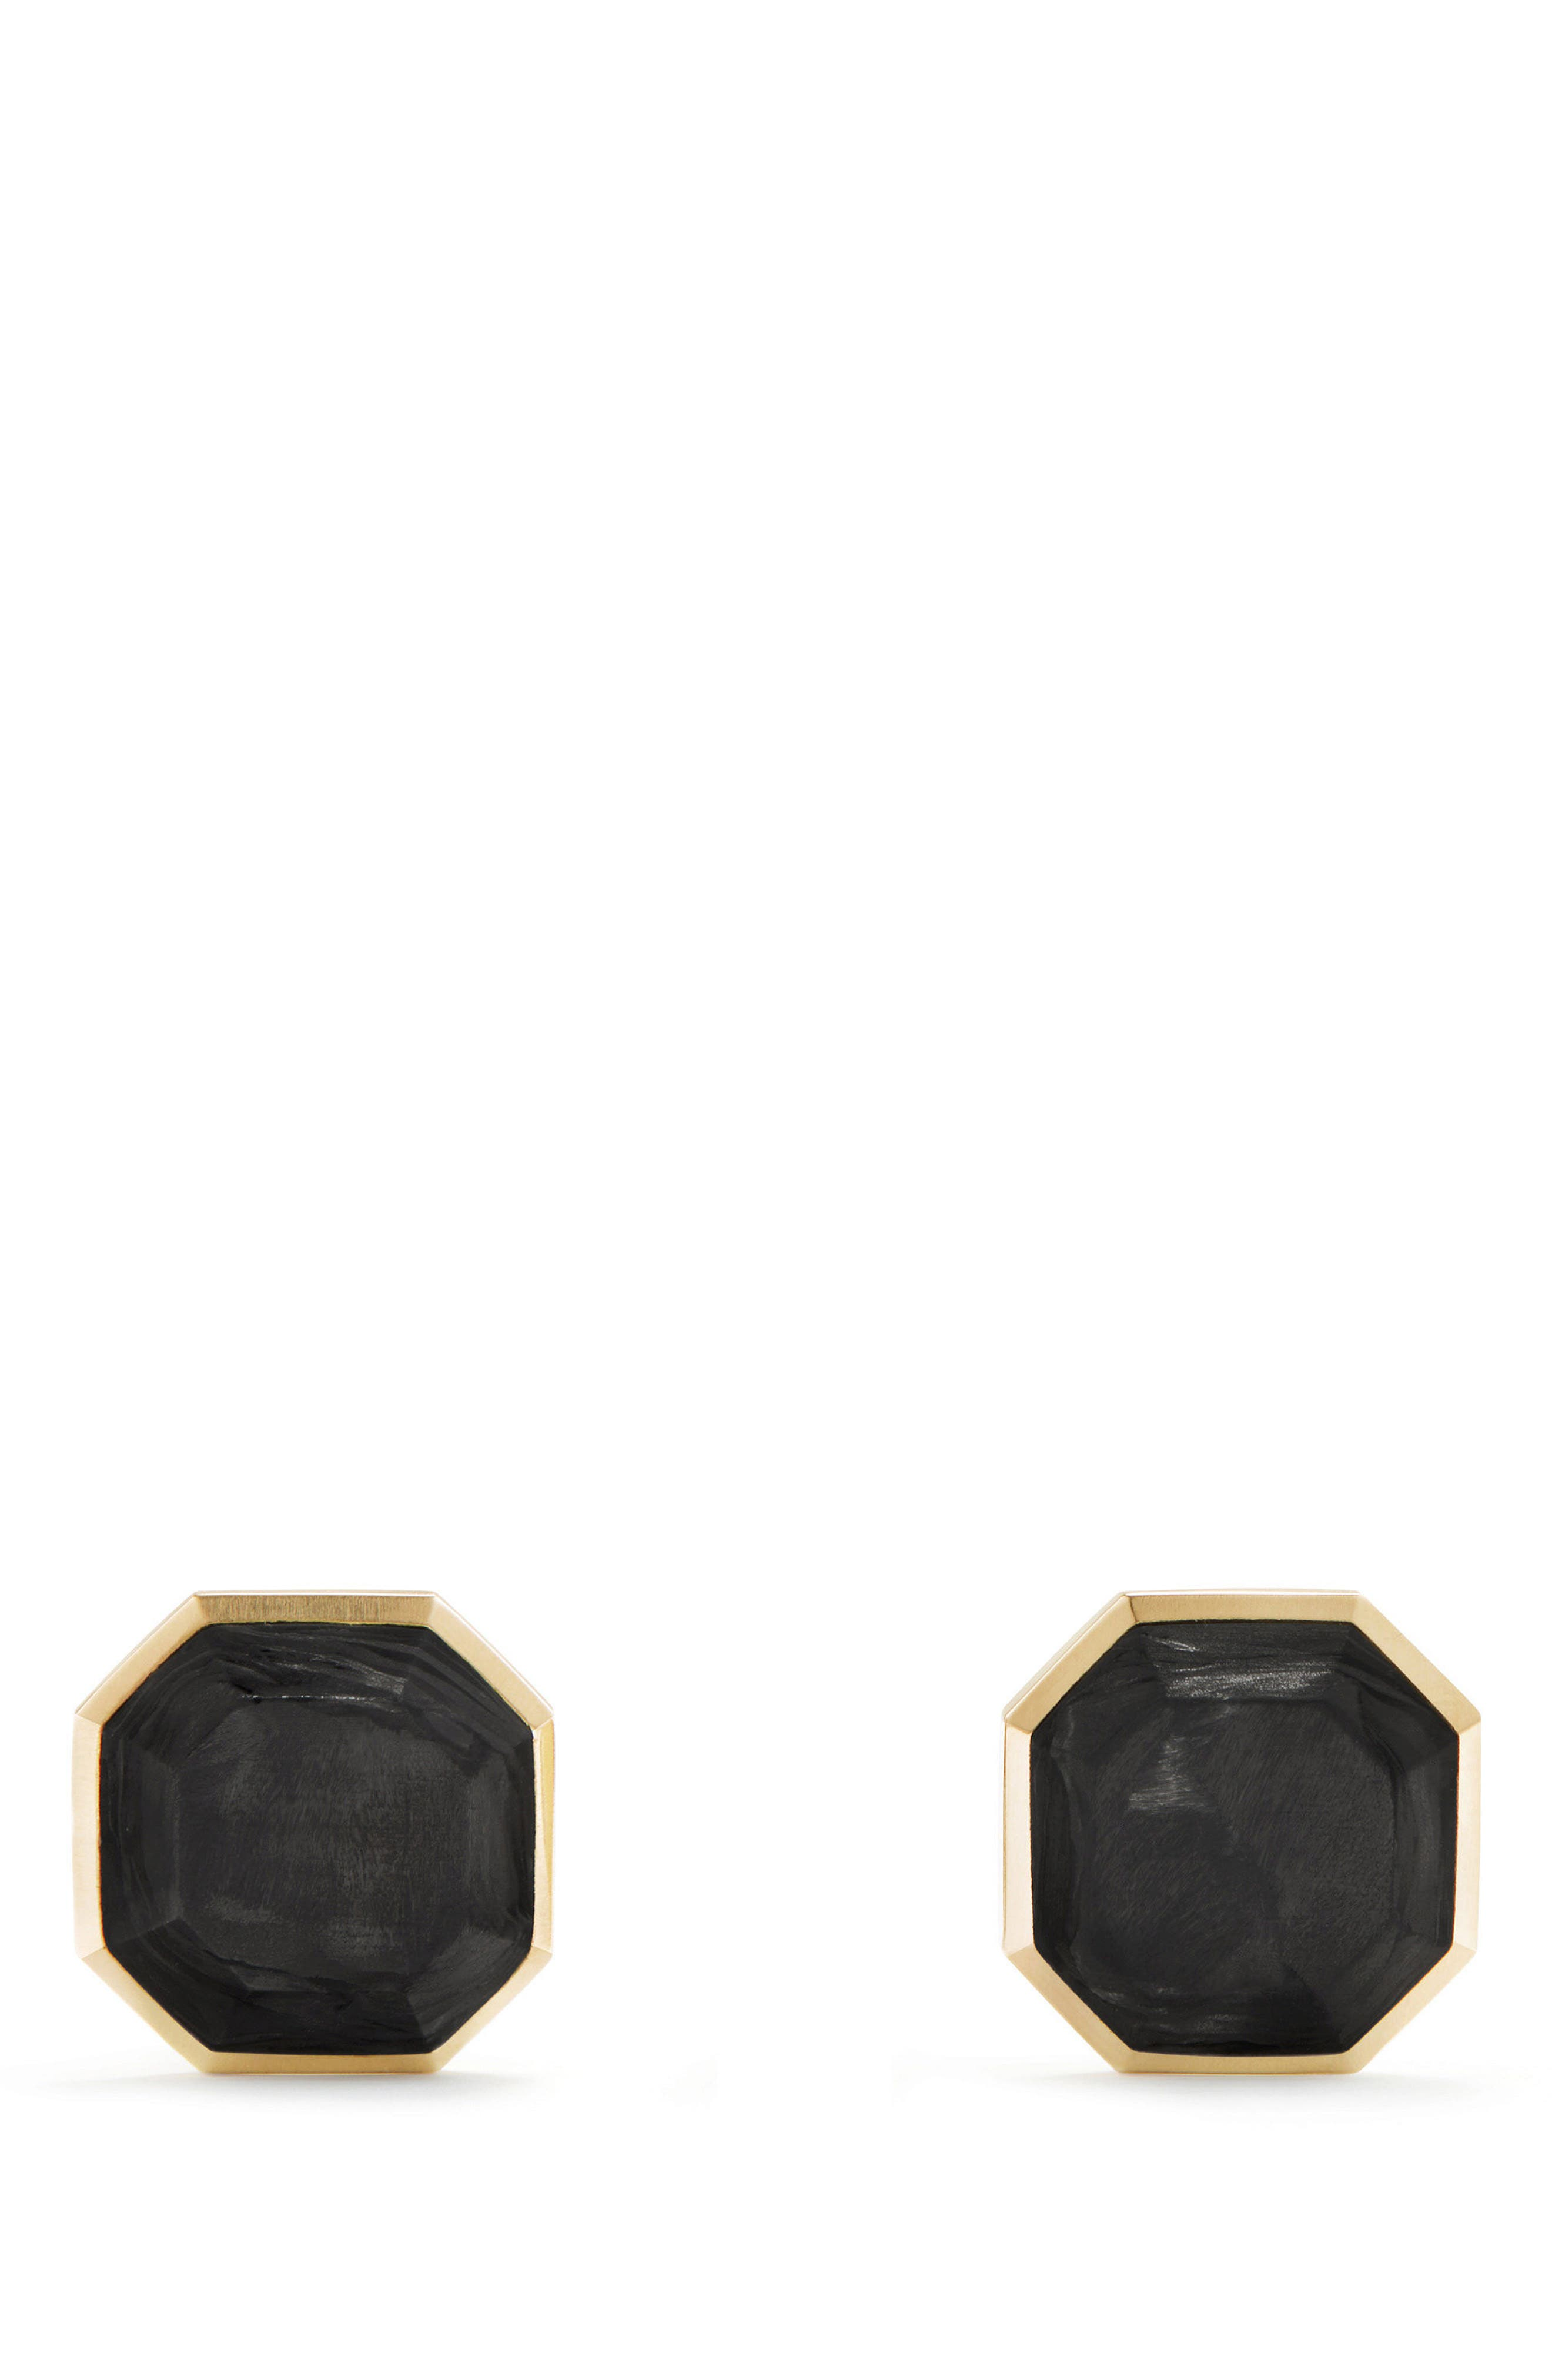 Alternate Image 1 Selected - David Yurman Forged Carbon Cufflinks in 18K Gold